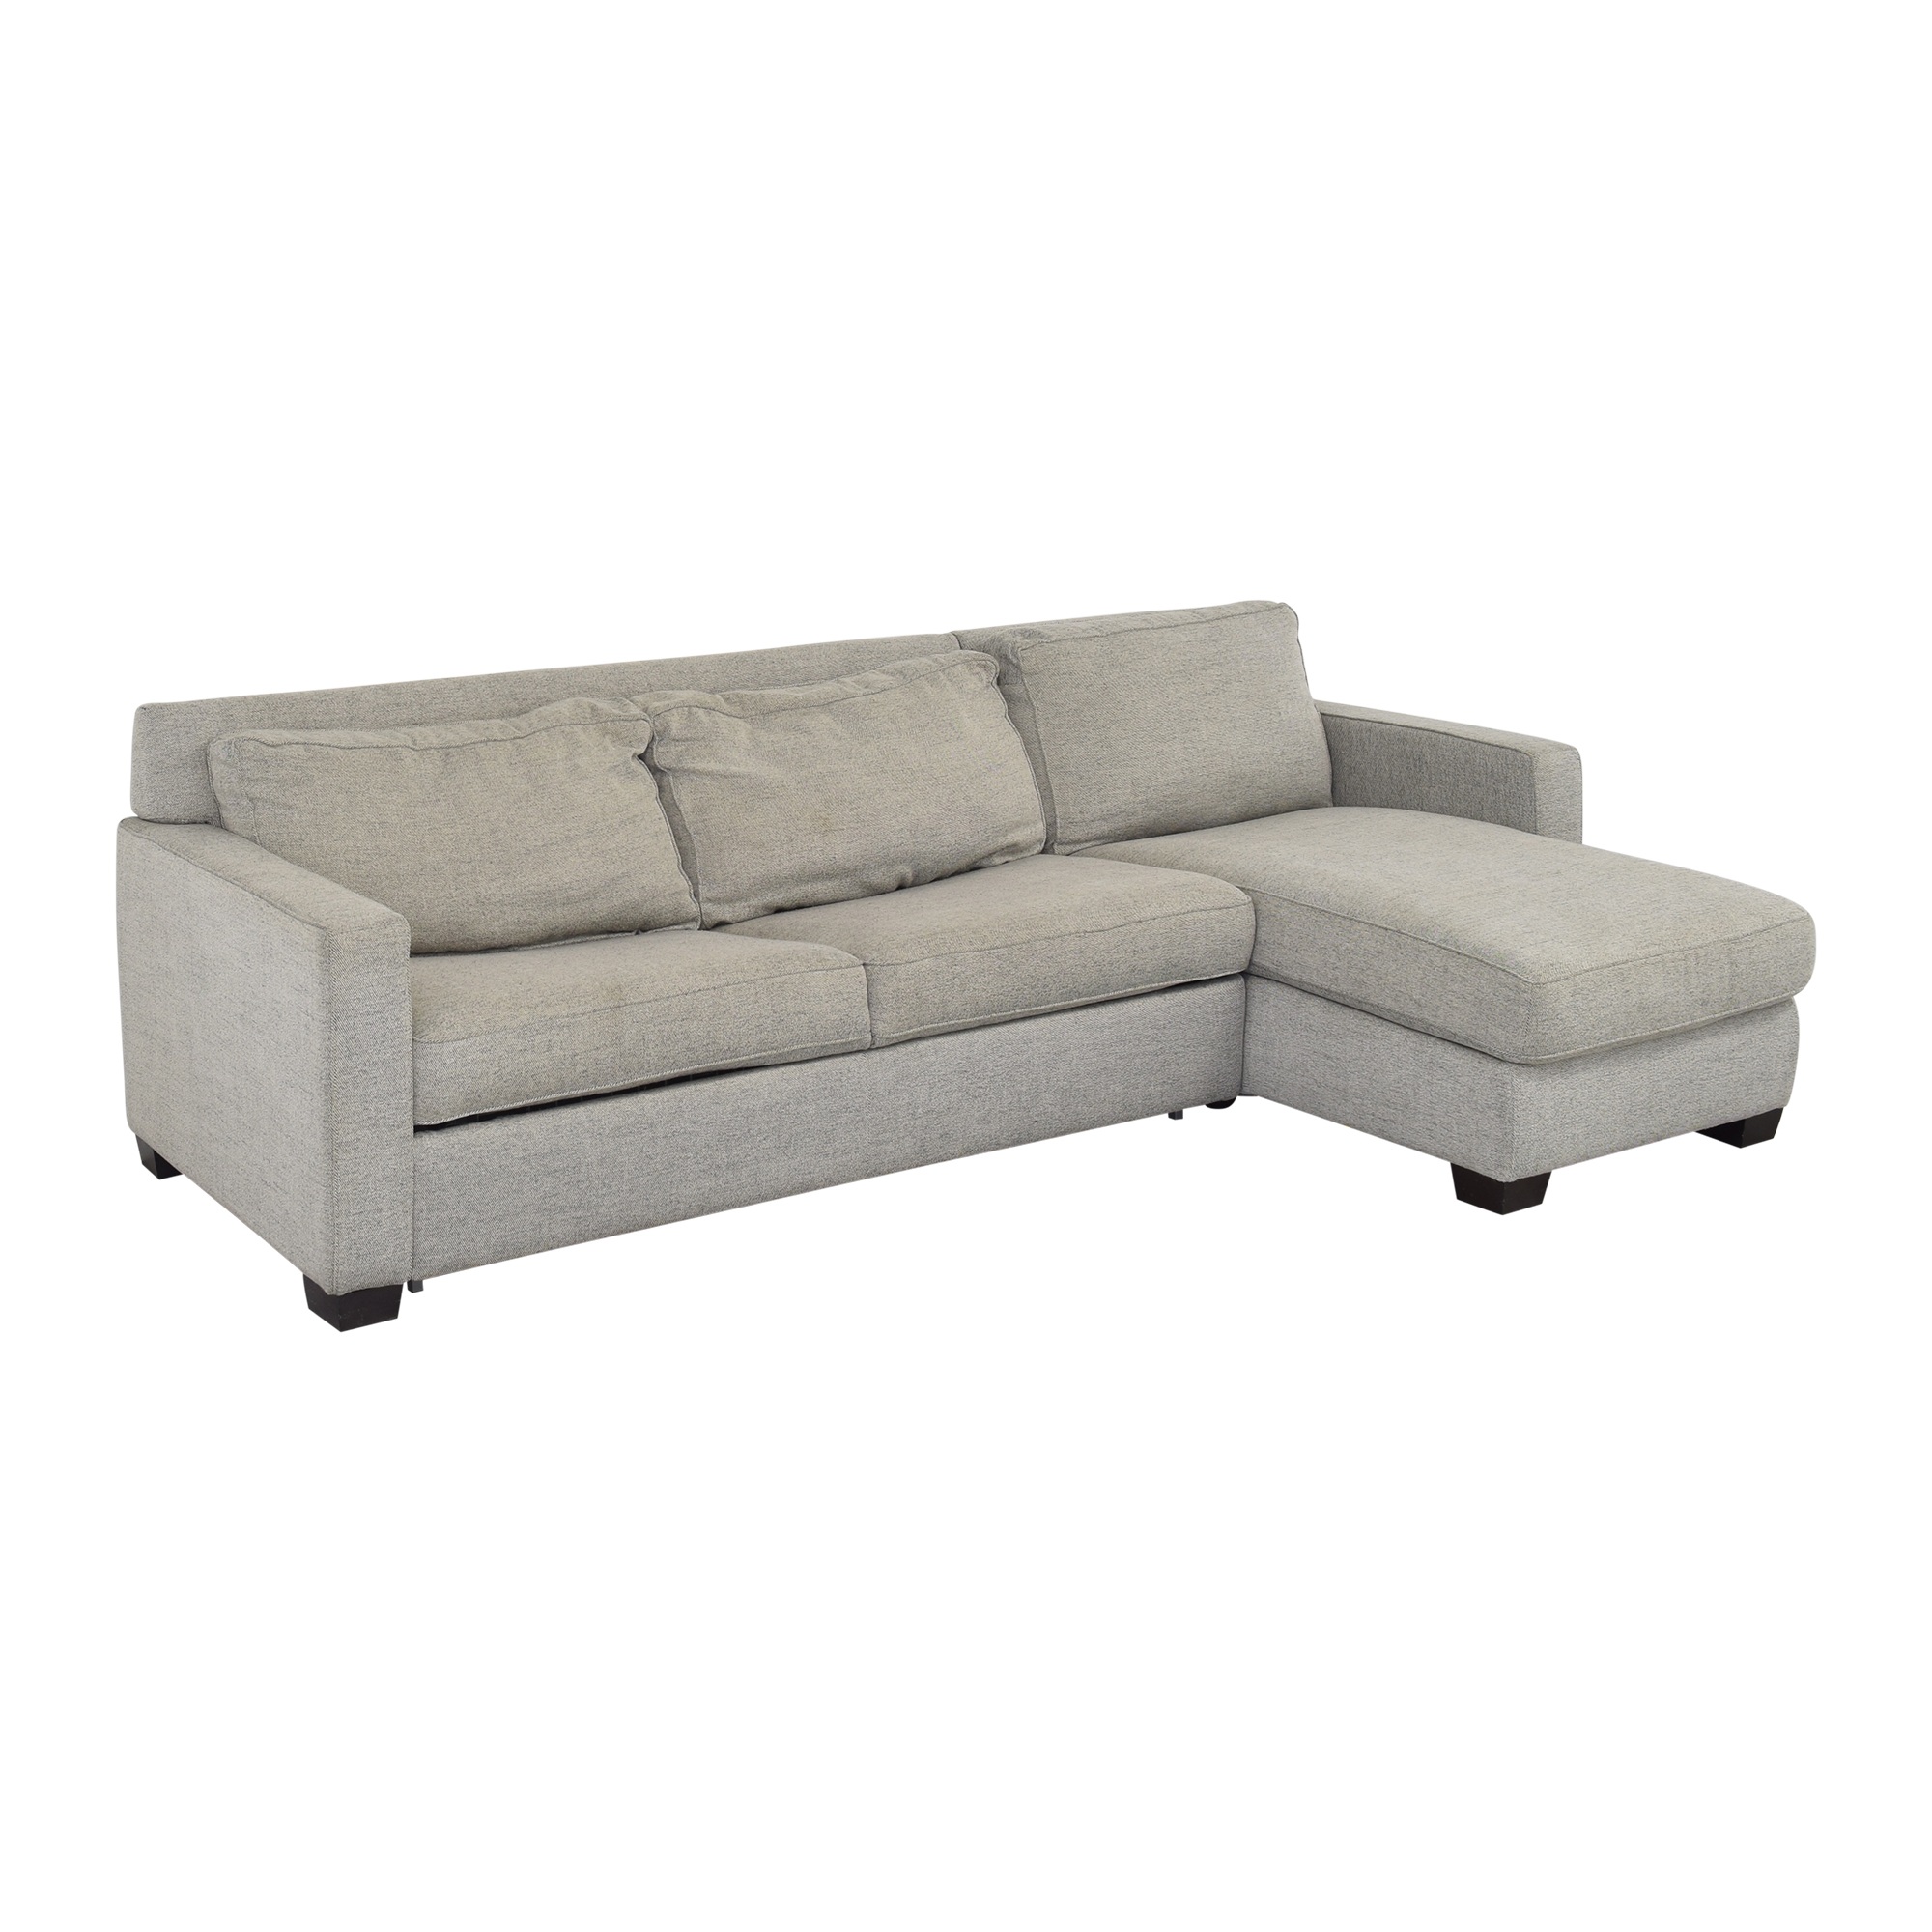 West Elm West Elm Henry 2-Piece Full Sleeper Sectional with Storage ma